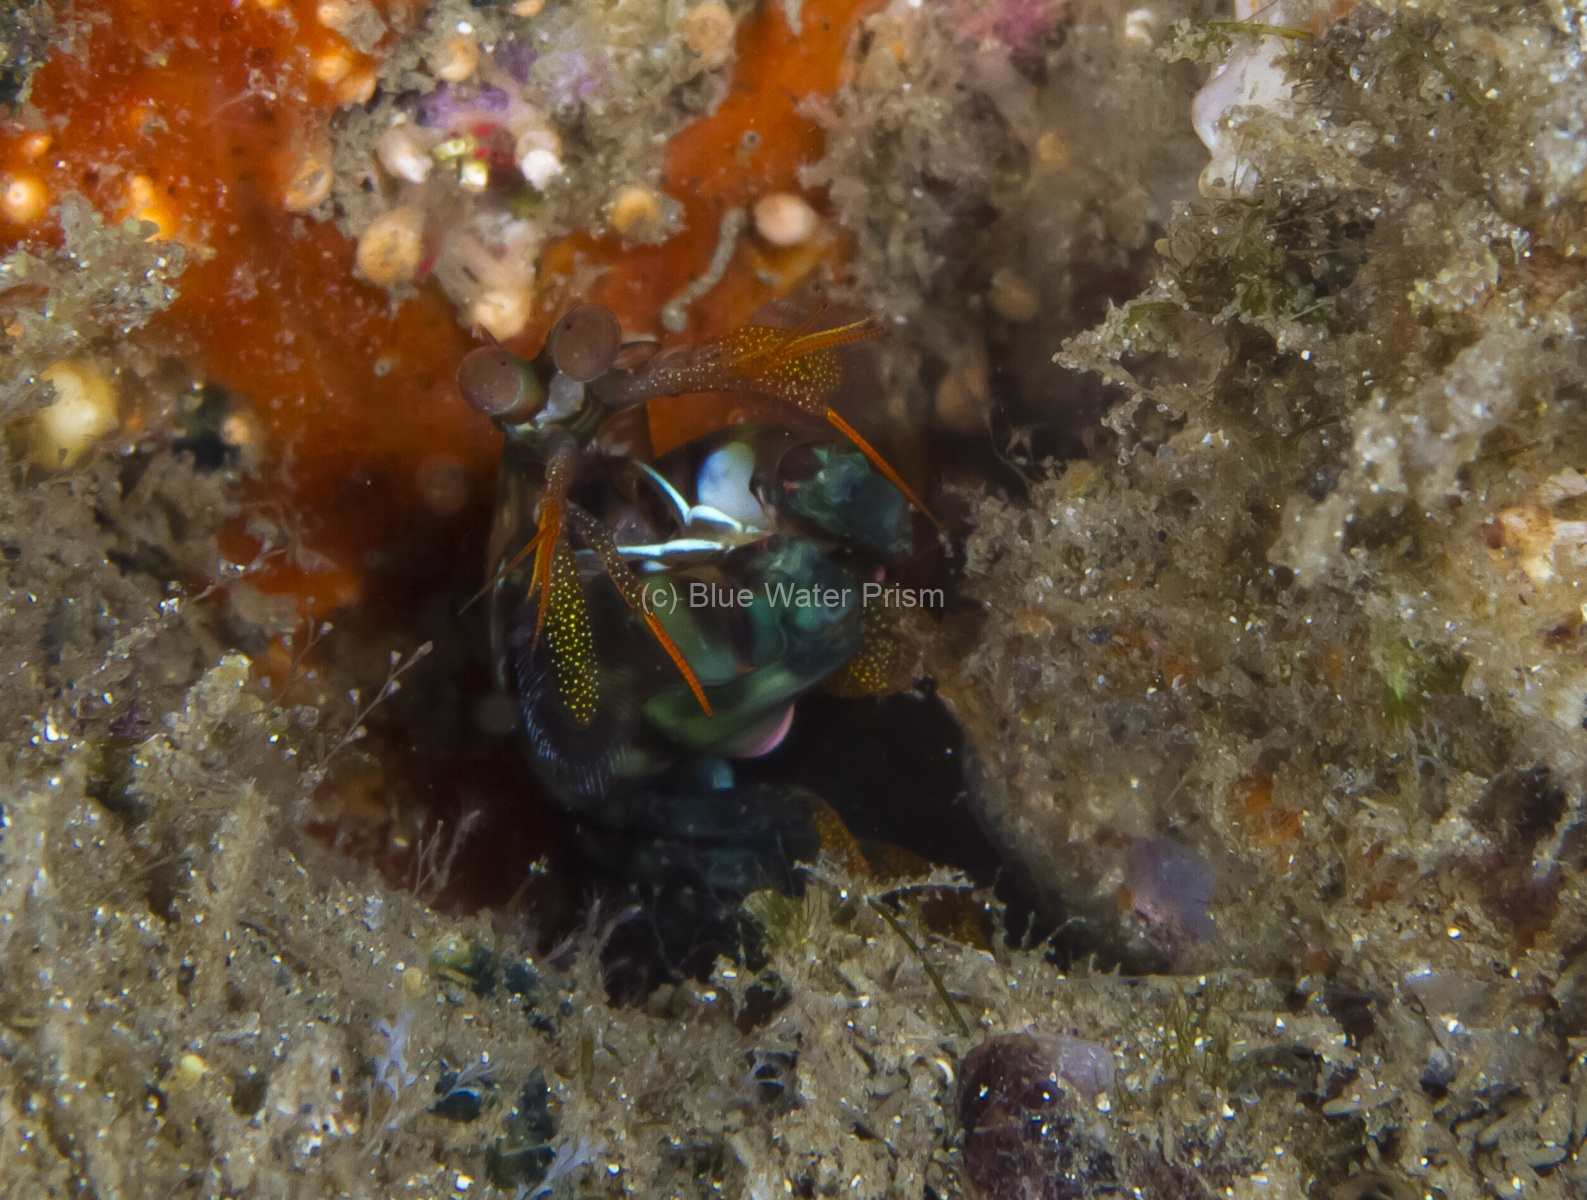 Mantis shrimp in coral hole